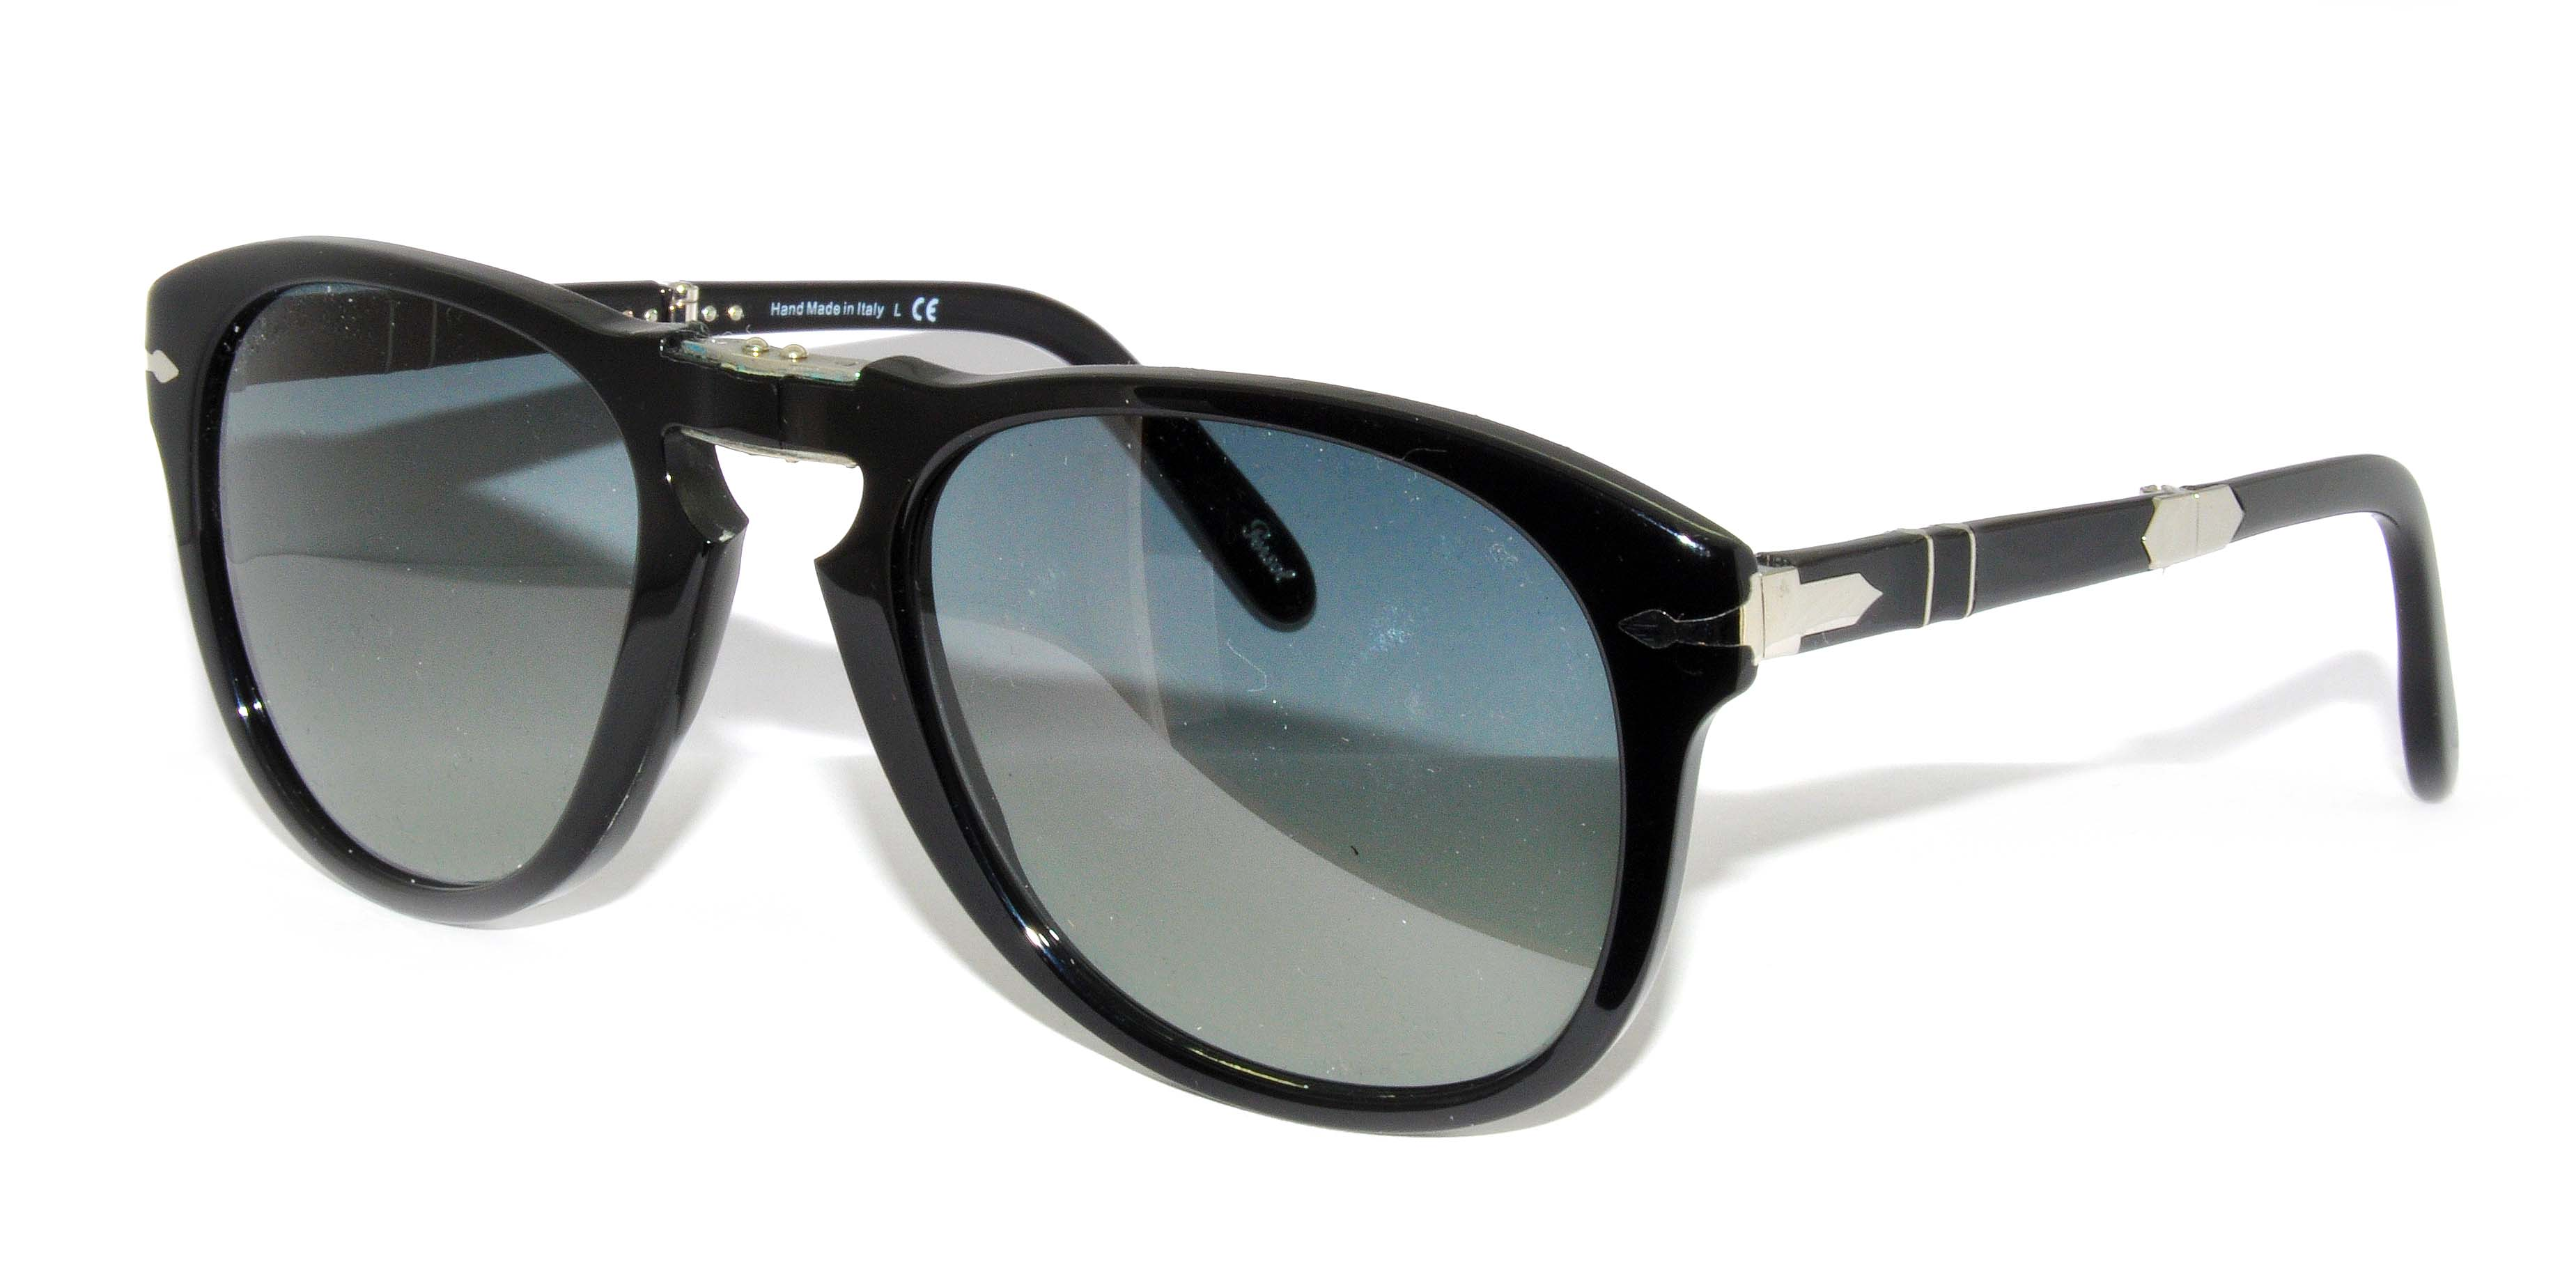 Persol Model: PO 0714 STEVE MCQUEEN, Colour Code: 95/71, Frame Colour: SHINY BLACK